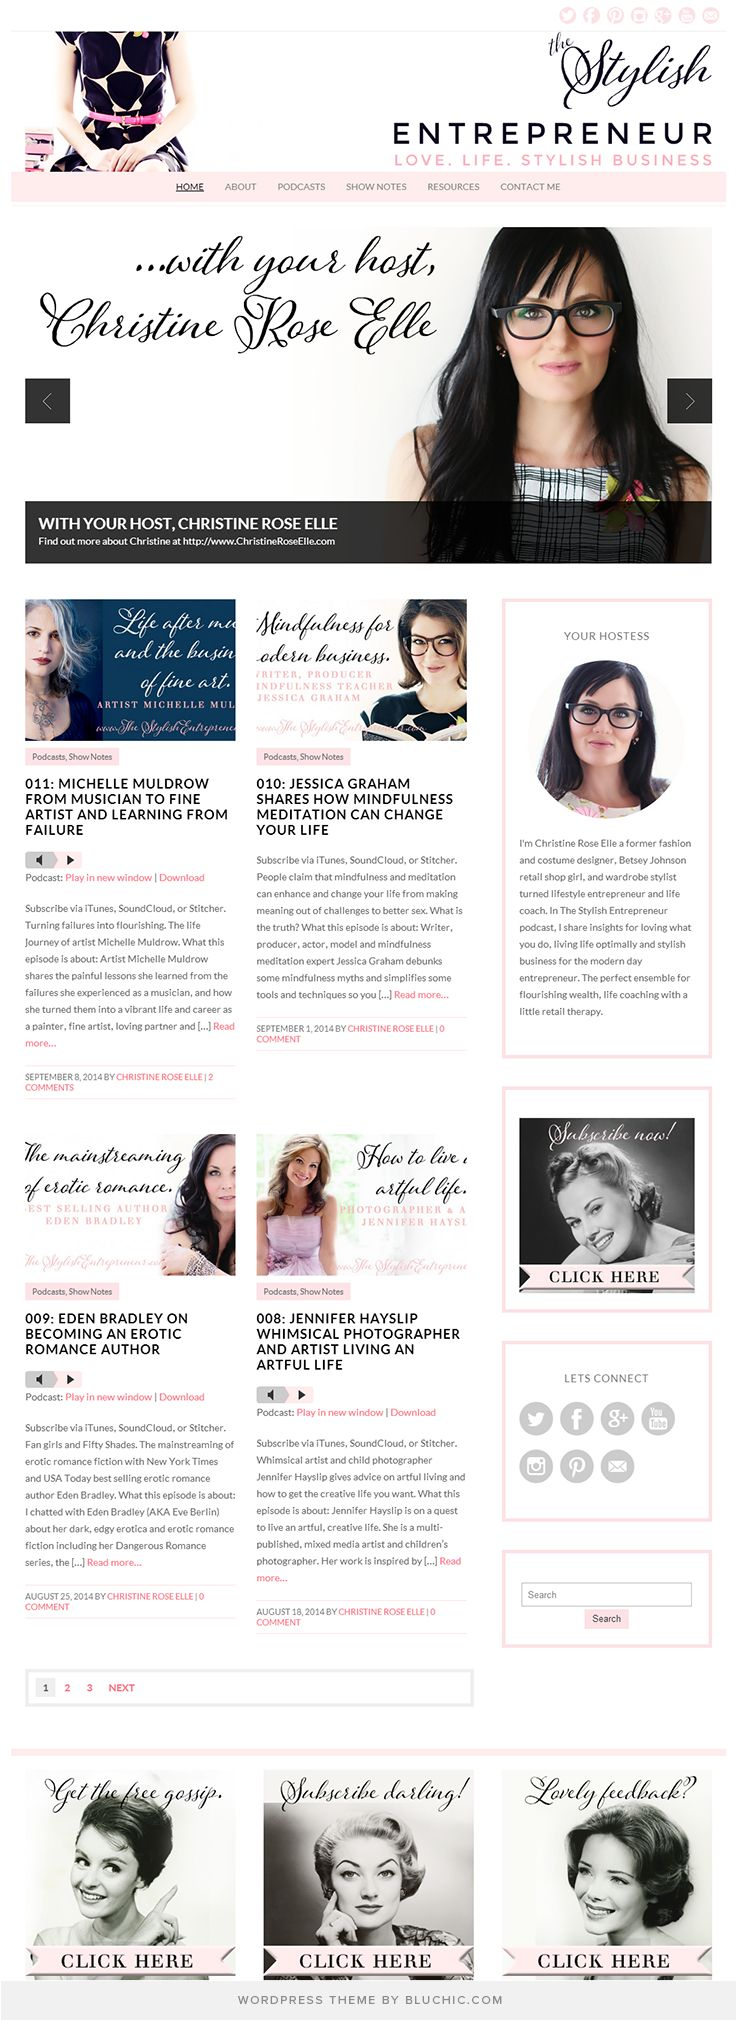 Blog design for The Stylish Entrepreneur. Running on Isabelle feminine WordPress Theme.